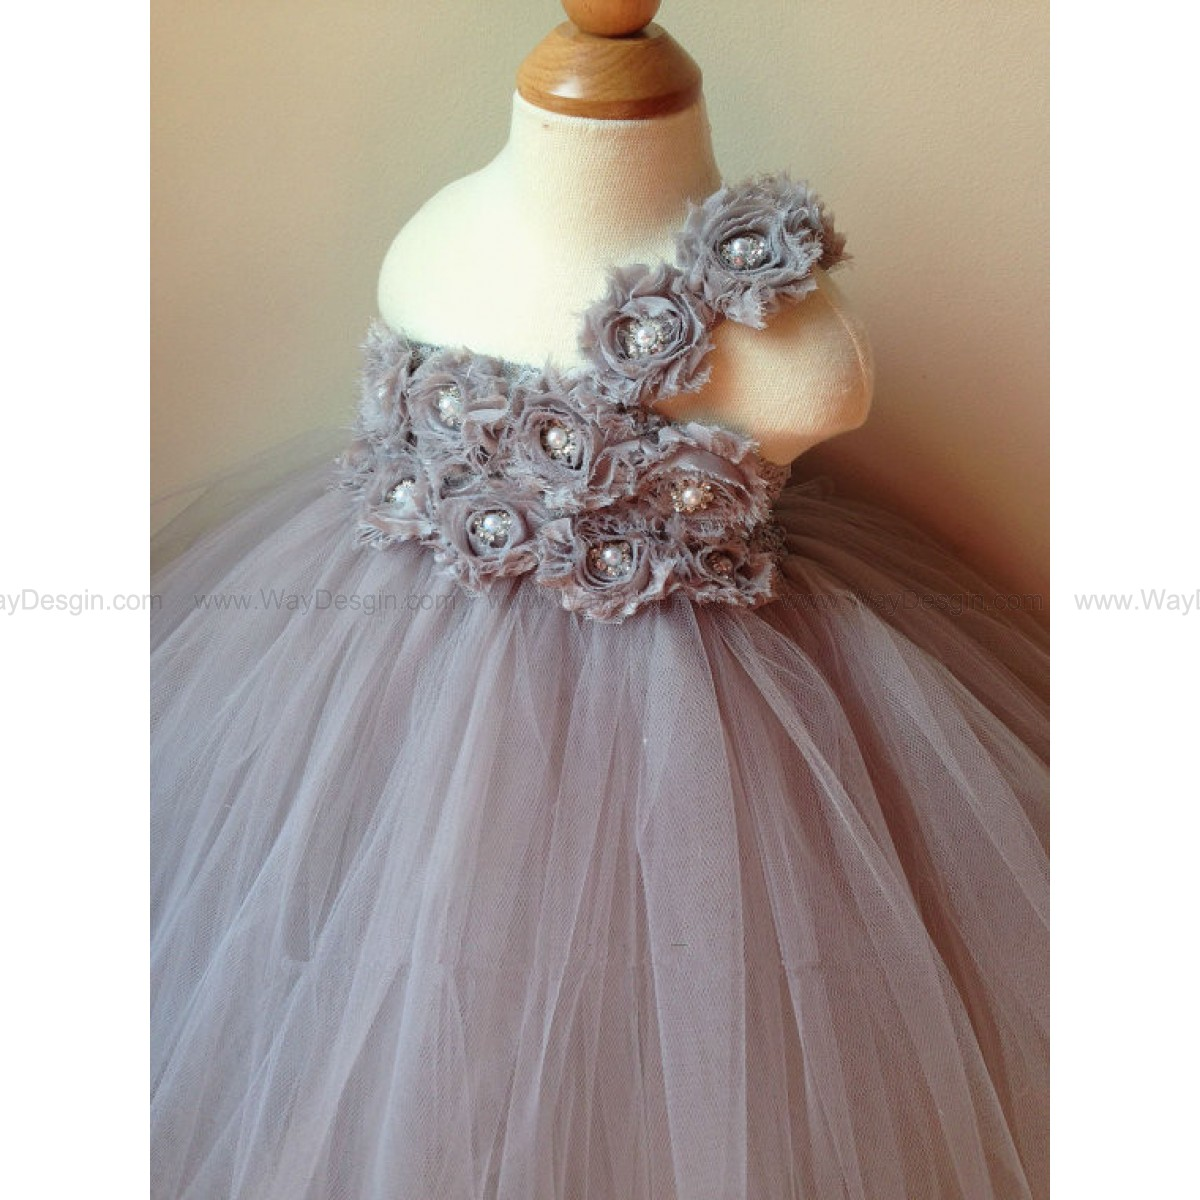 Flower girl dress gray tutu dress, chiffton roses, baby tutu dress, toddler tutu dress,newborn